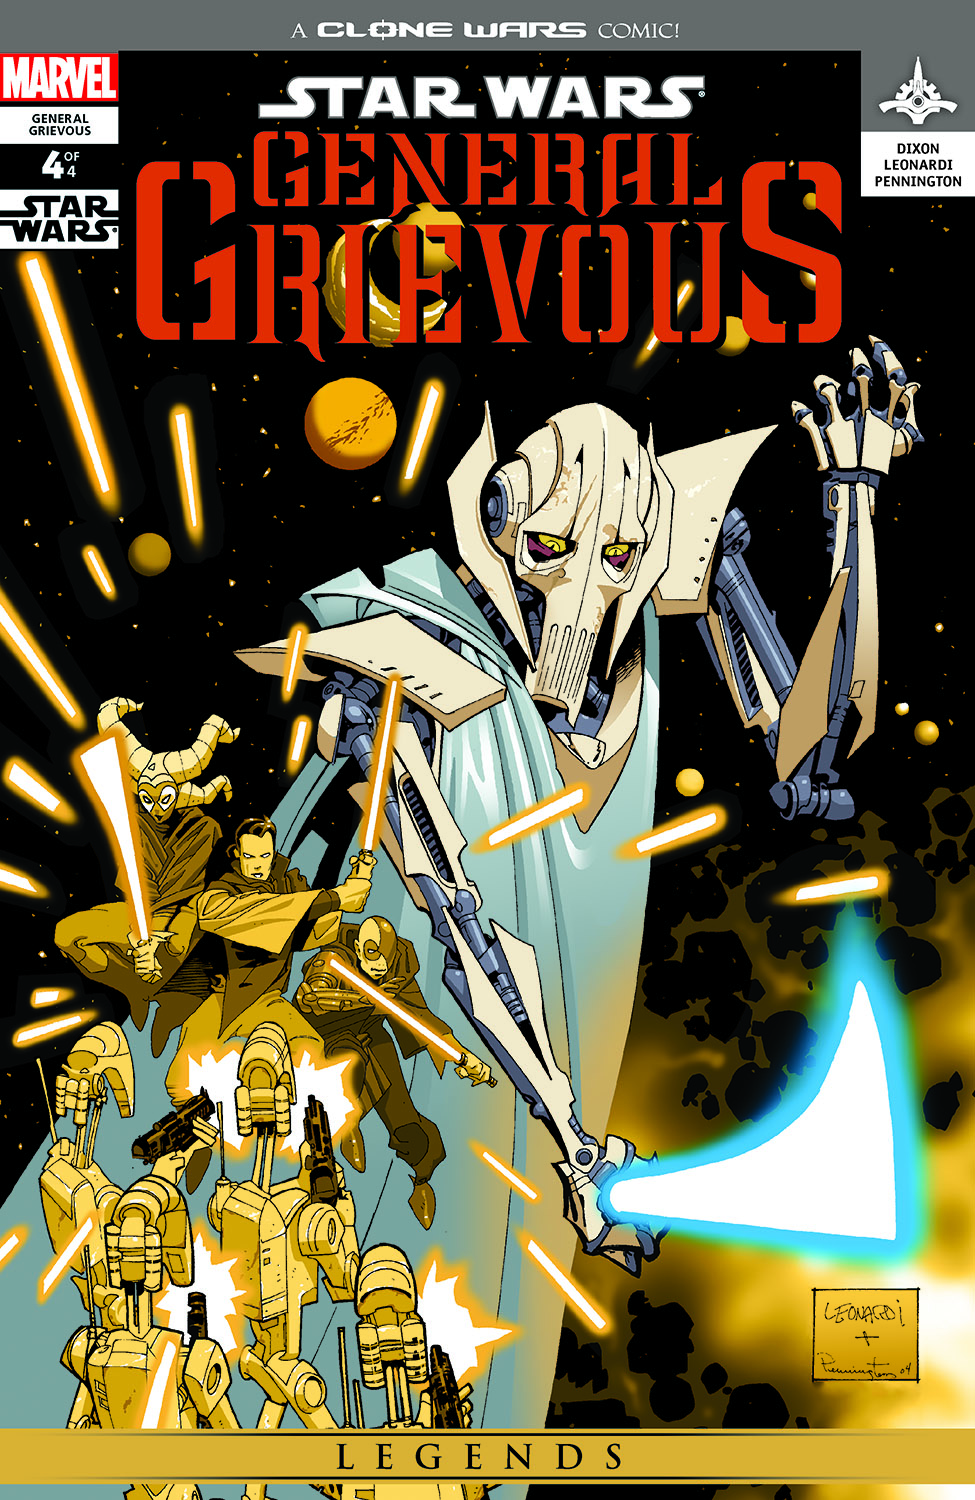 Star Wars: General Grievous (2005) #4